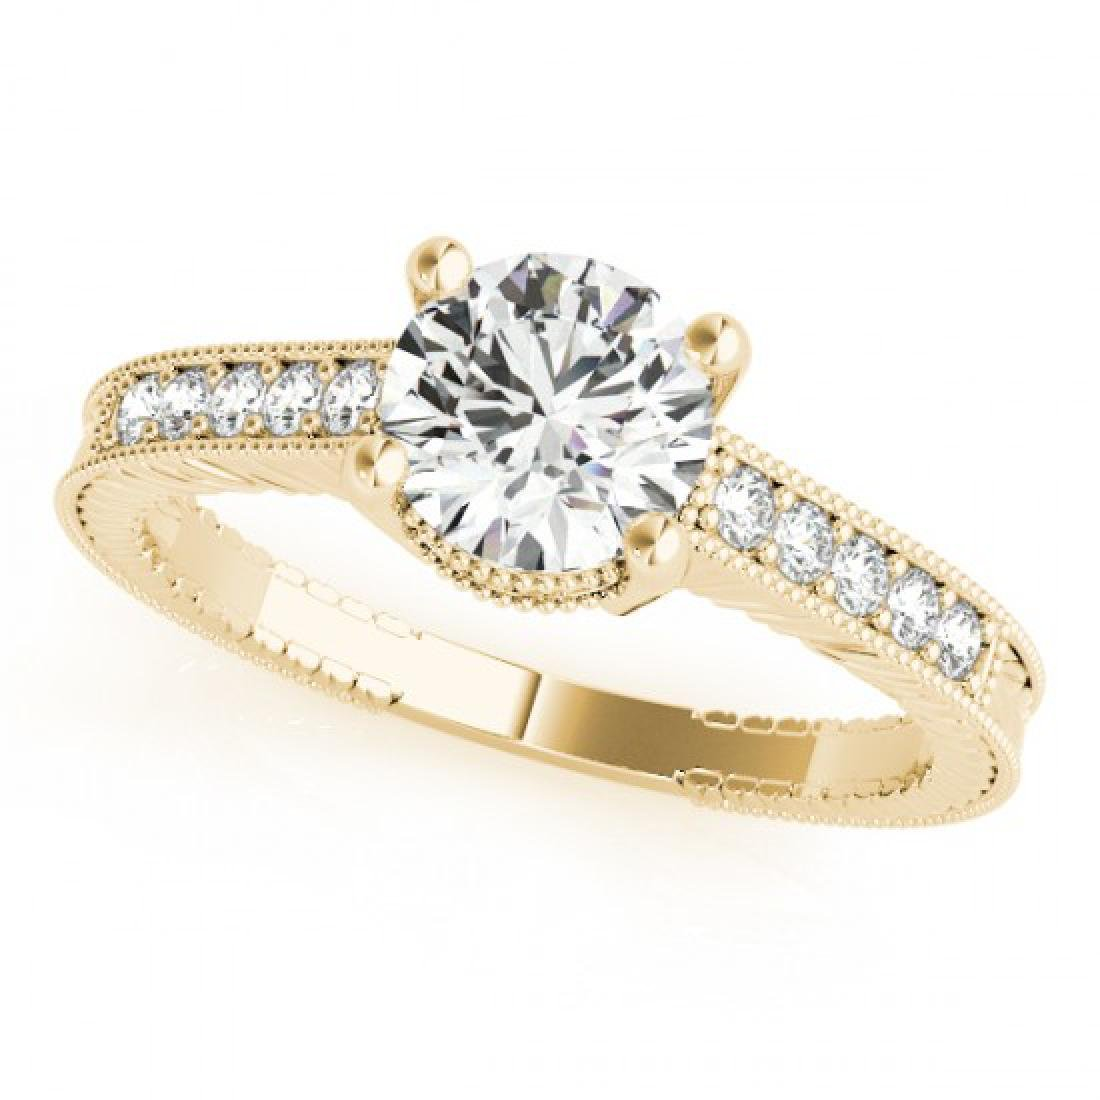 1.45 CTW Certified VS/SI Diamond Solitaire Antique Ring